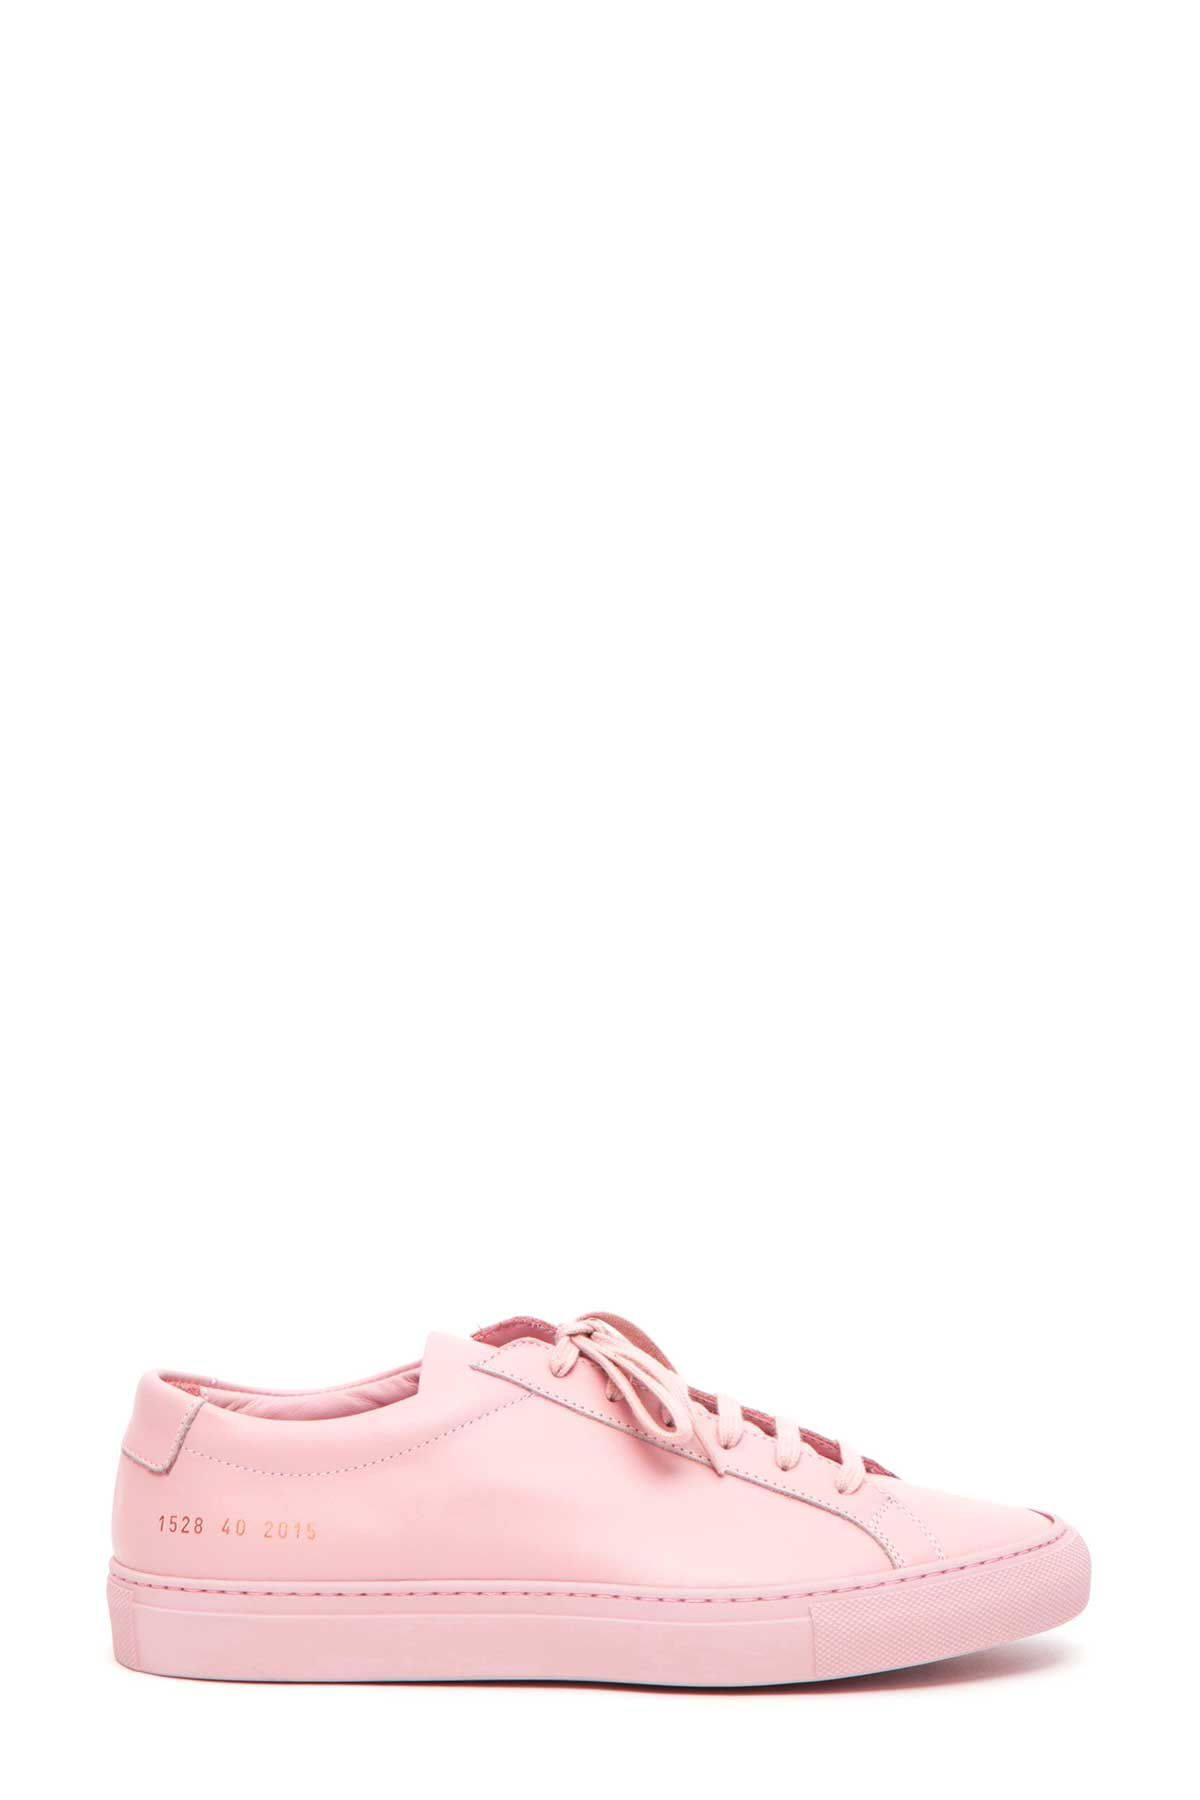 Common Projects Common Projects Original Achilles Low Sneakers